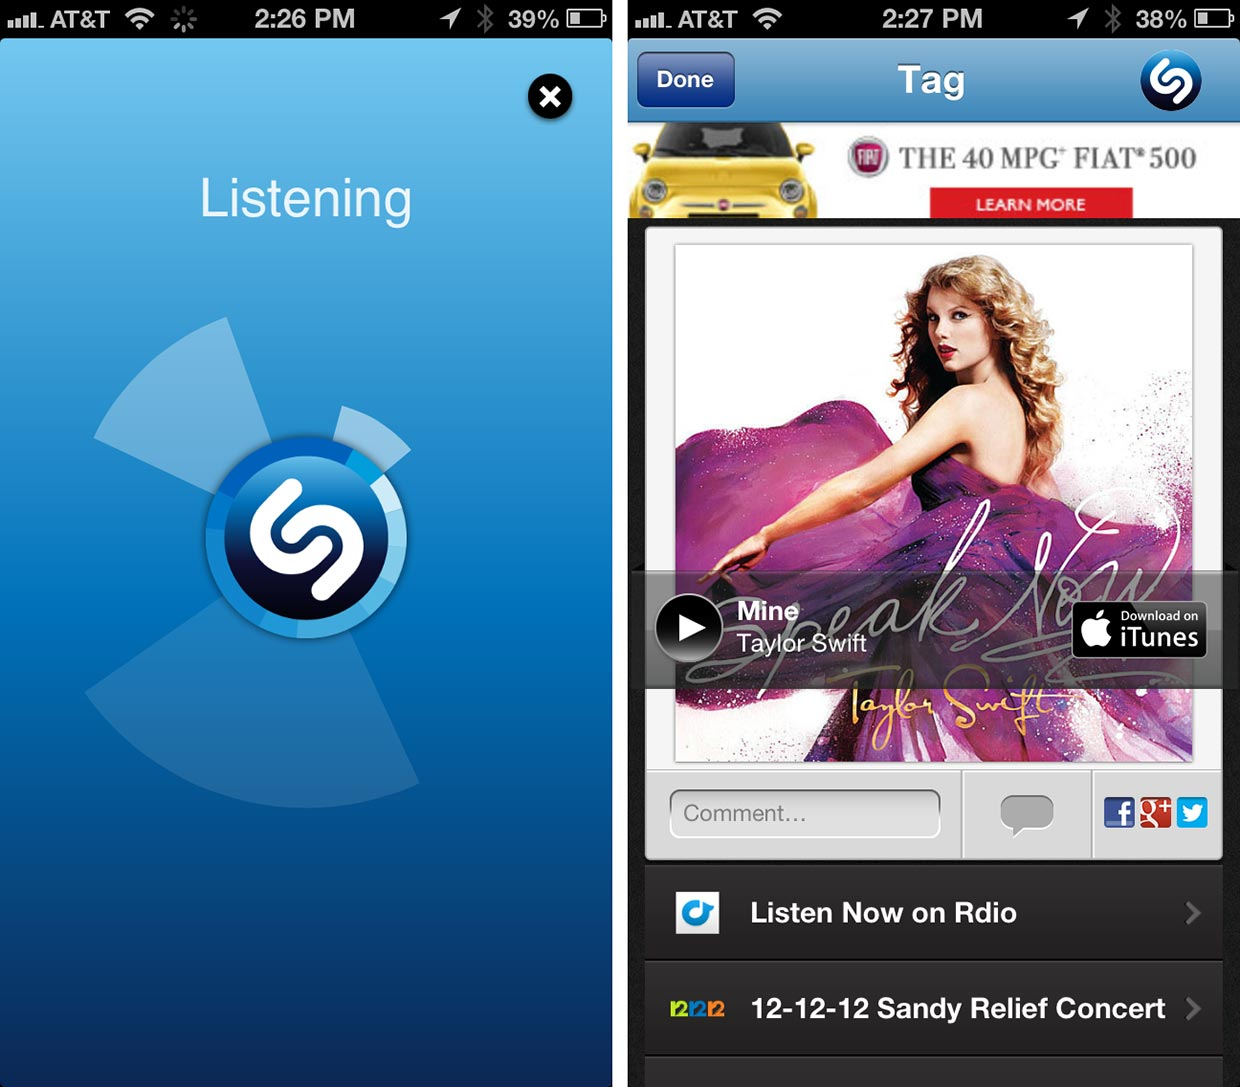 mejores apps 2014 shazam